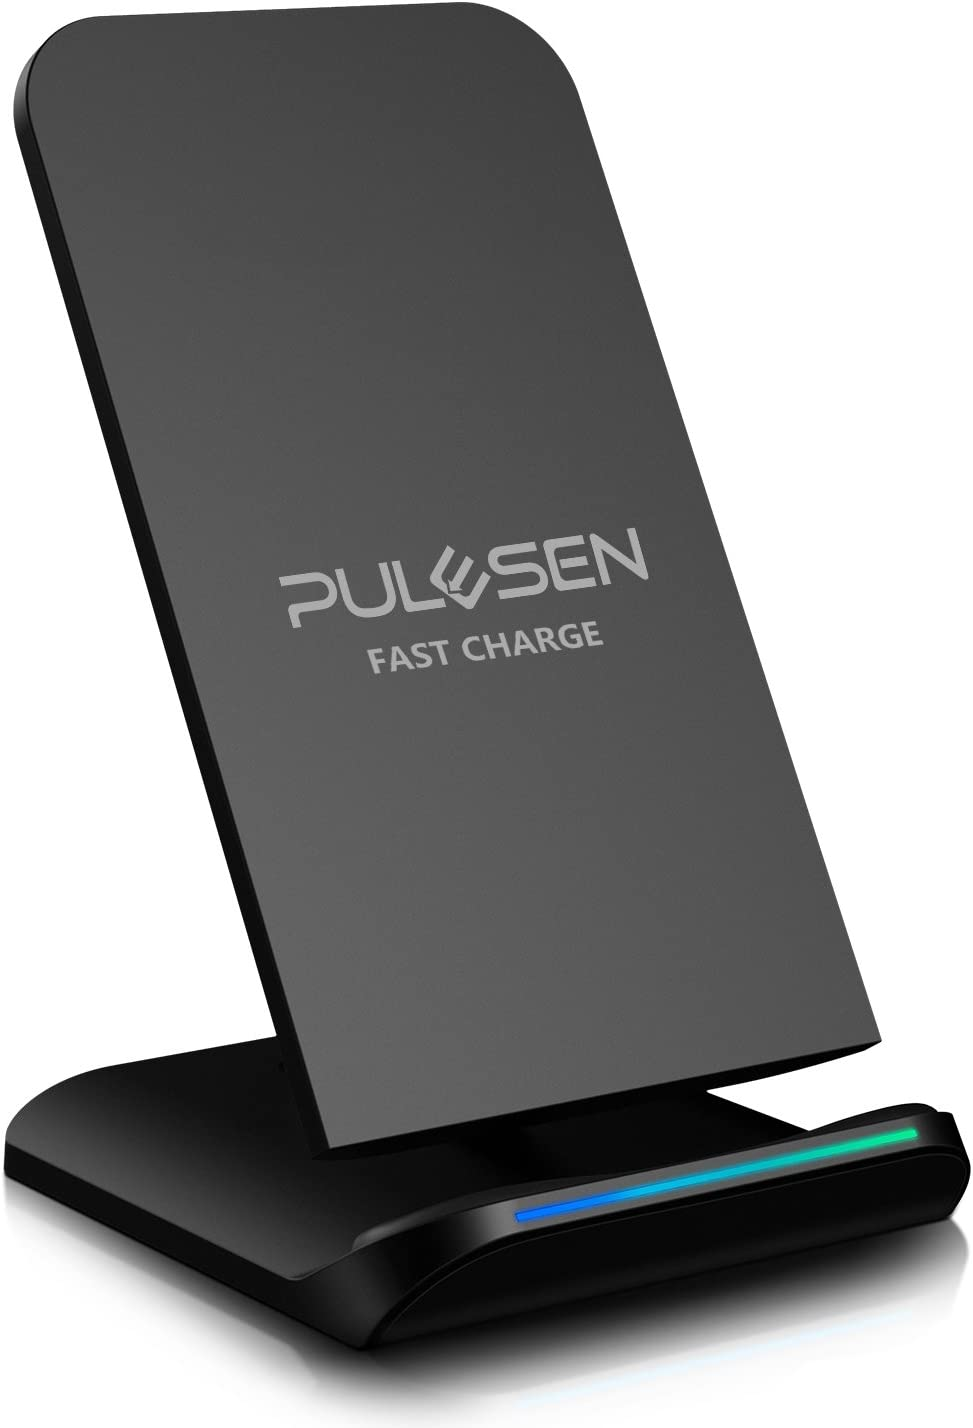 PULESEN Fast Wireless Charger, Qi Certified Wireless Charging Stand 10W Fast Charge for Samsung Galaxy S9 S9 Plus Note 8 S8 S8 Plus S7 S7 Edge S6 Edge